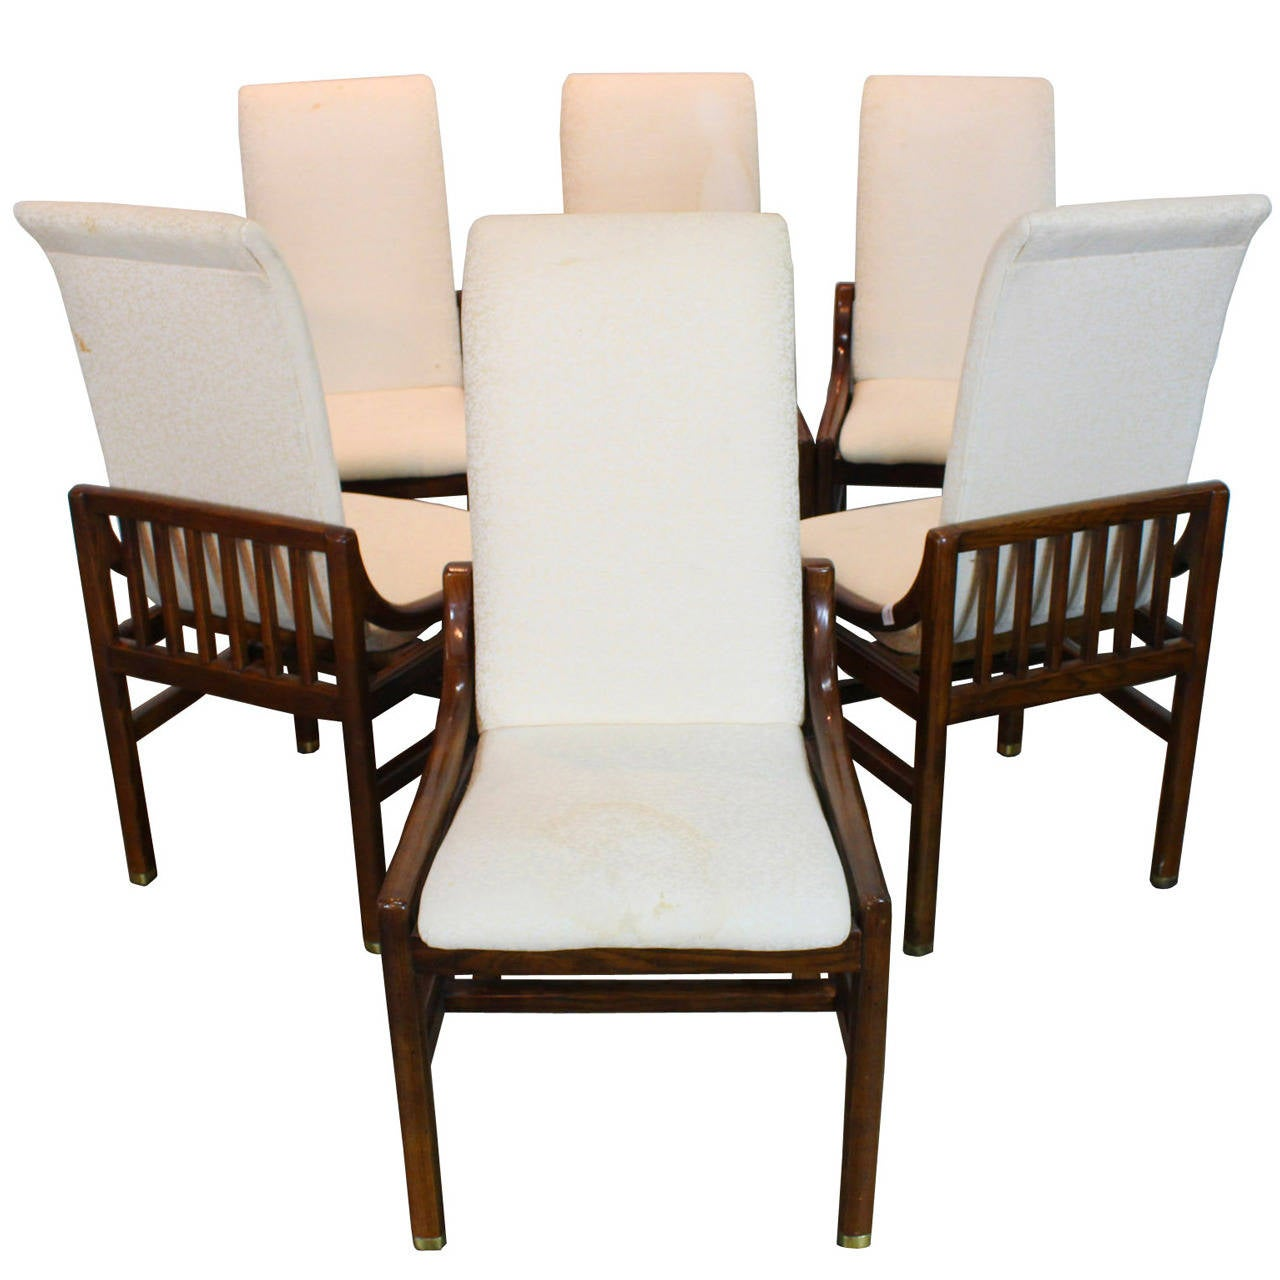 this set of six henredon dining chairs in walnut is no longer